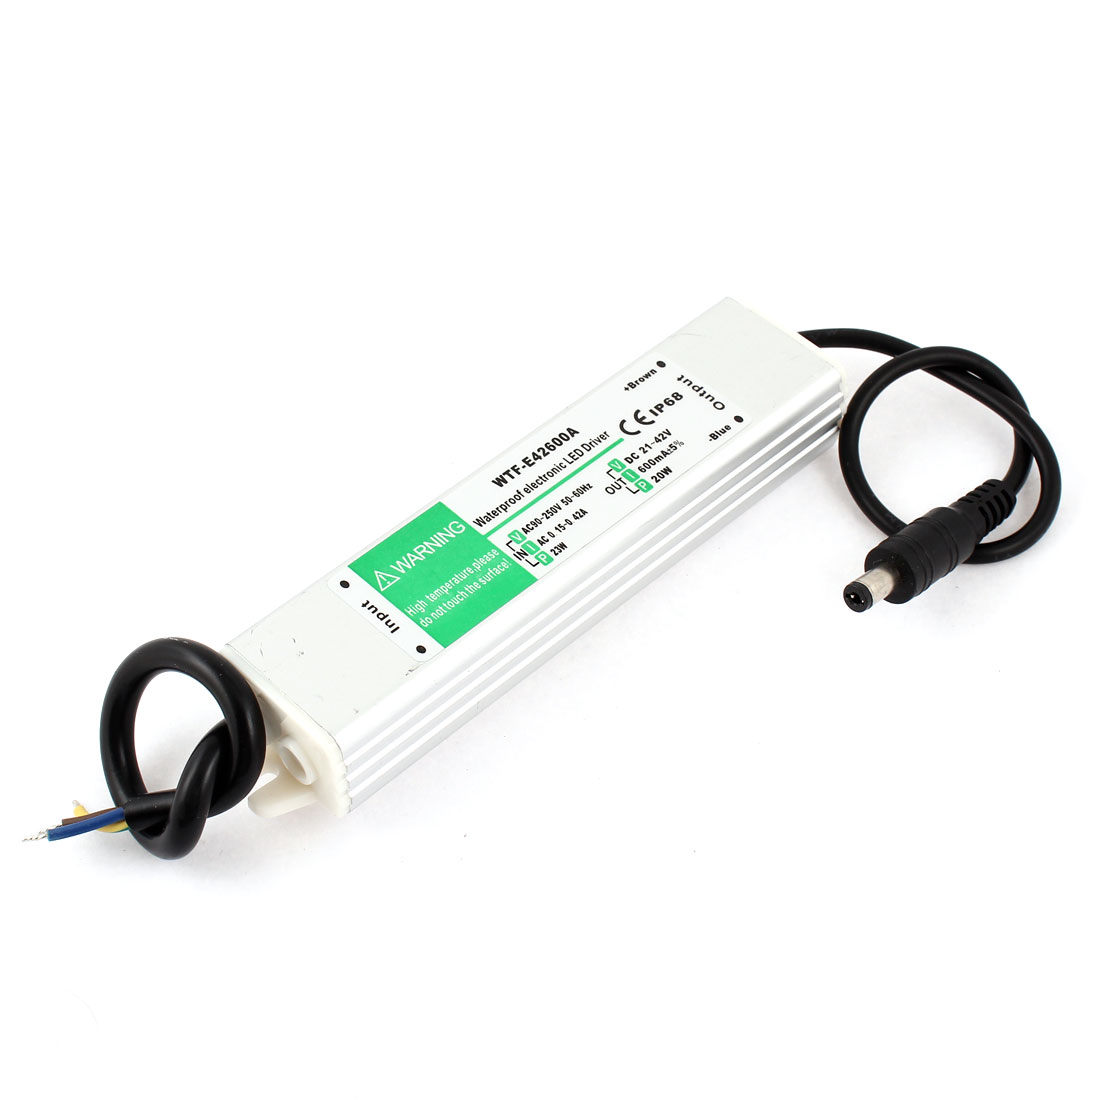 DC 21-42V 20W DC Connector Waterproof LED Driver Transformer Power Supply